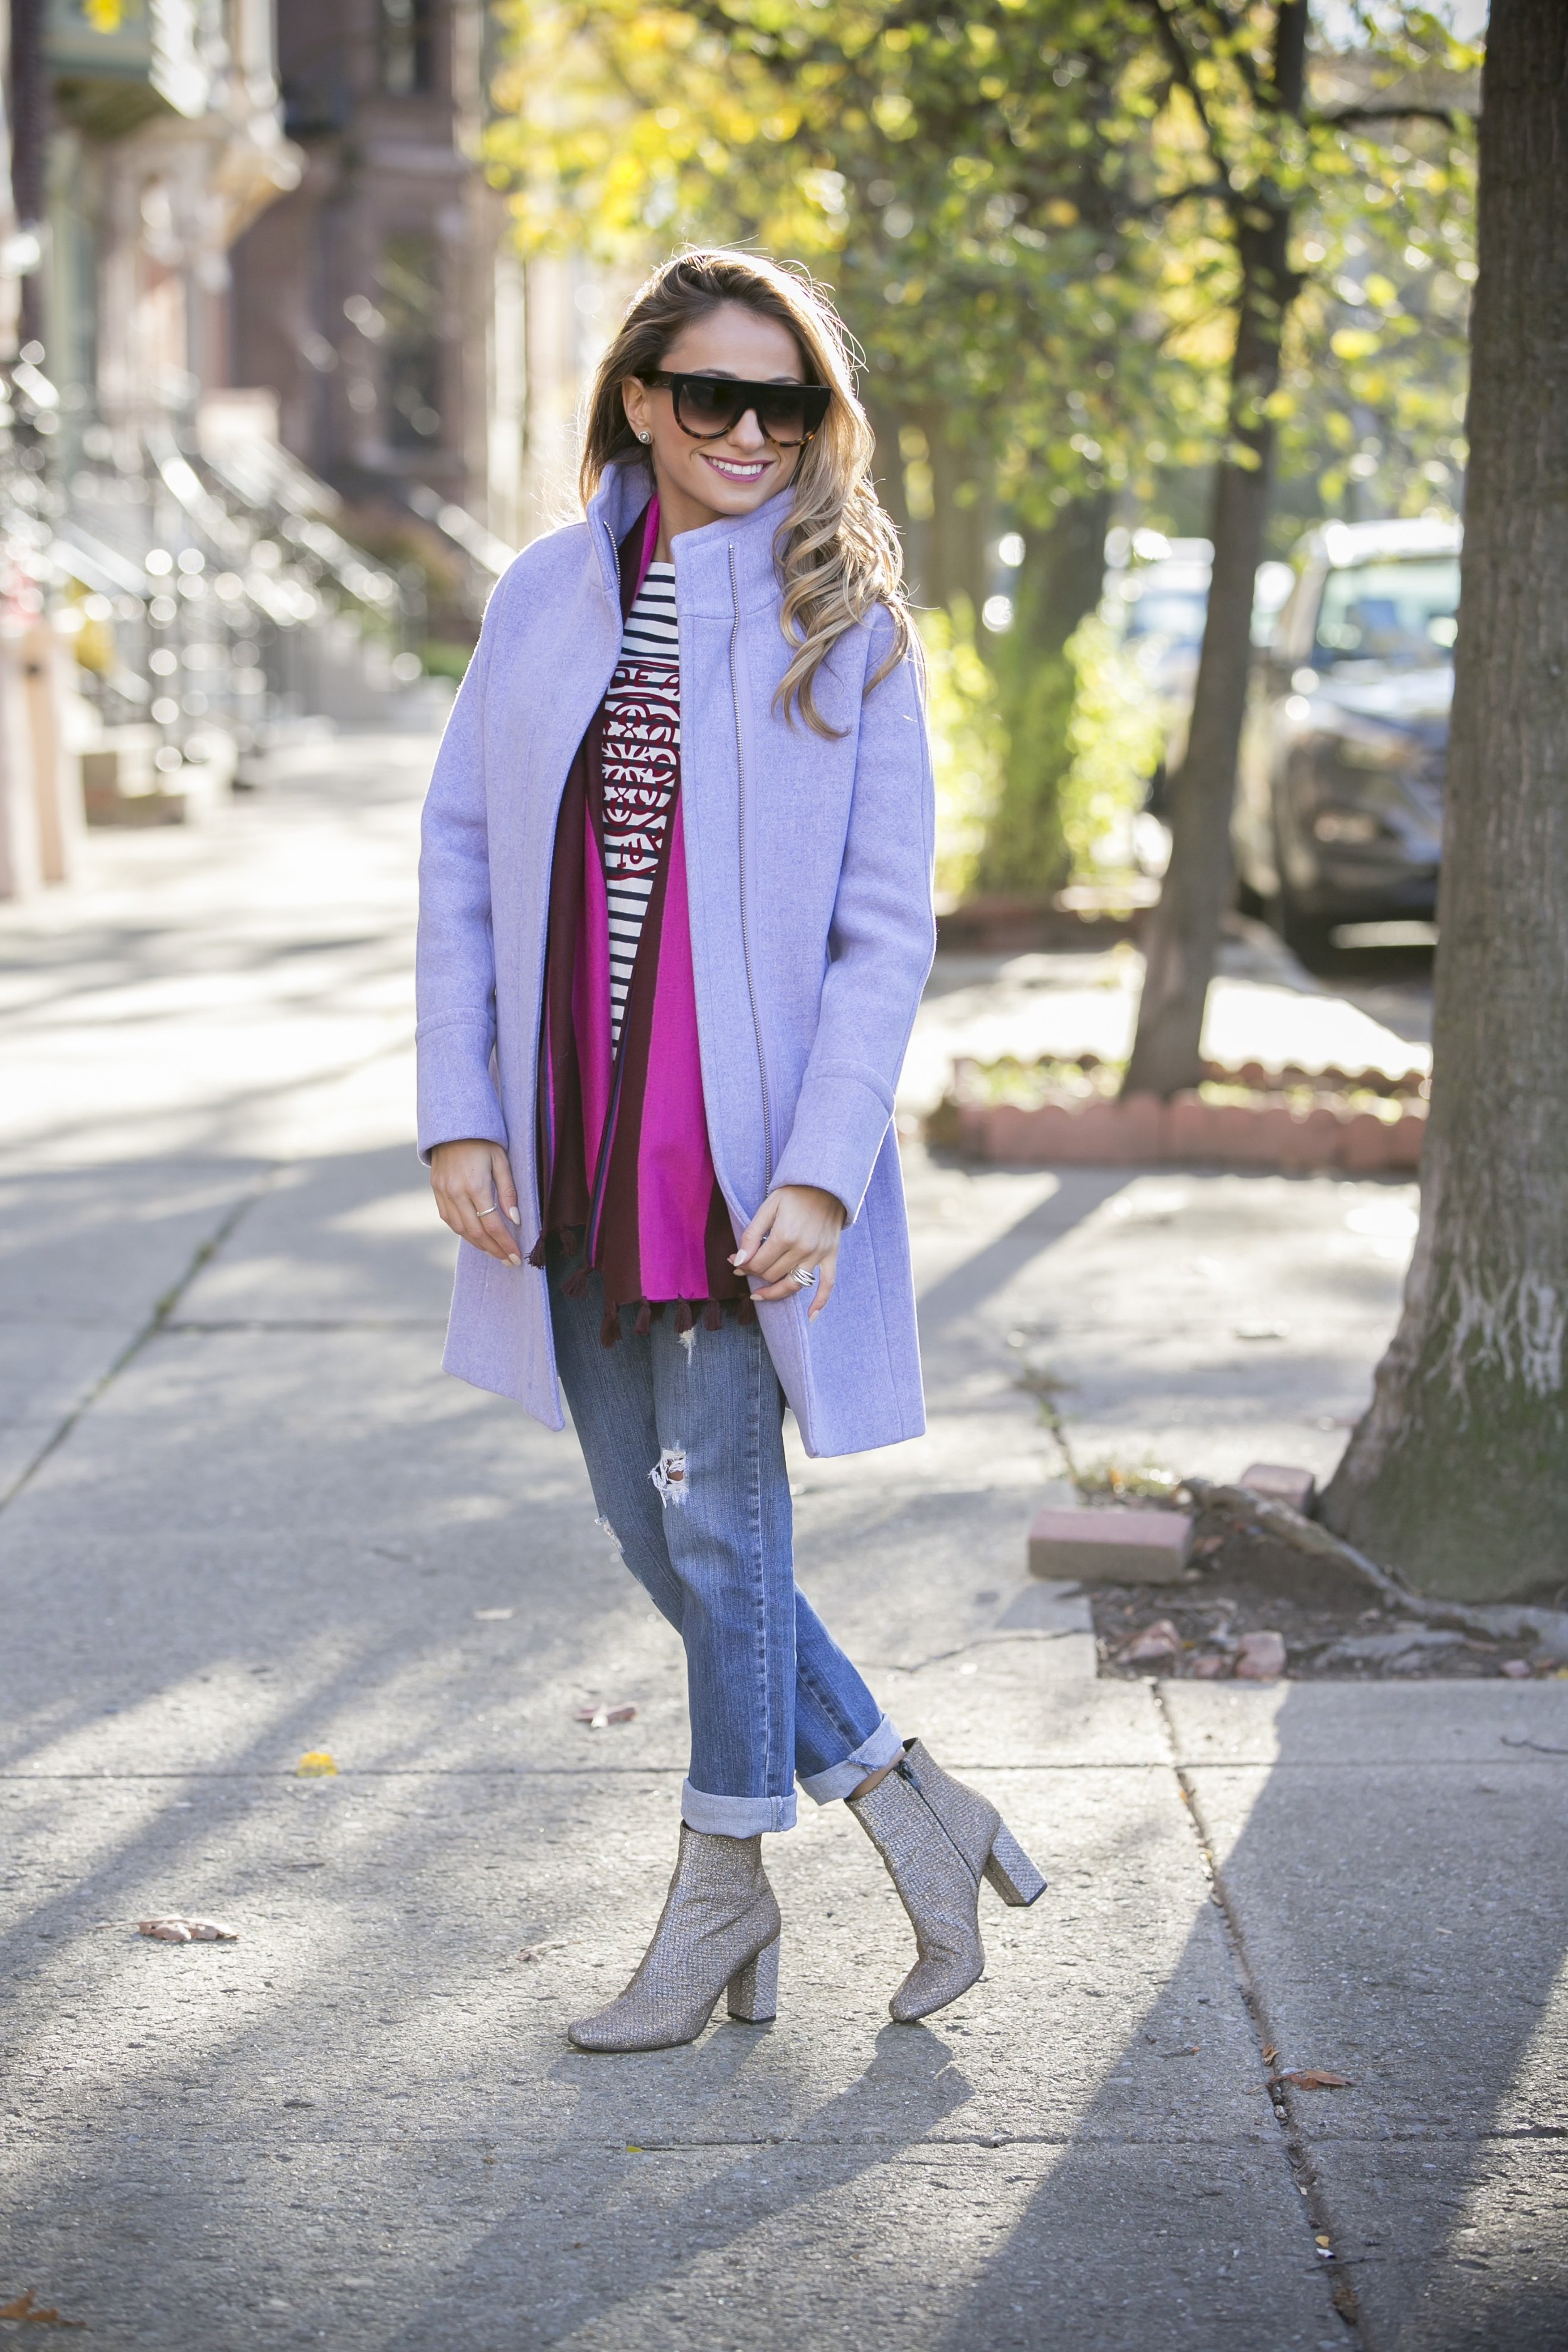 Coat: J.Crew |Tee: J.Crew |Scarf: J.Crew |Denim:Stella McCartney(older)|Booties: Saint Laurent     Dino Petrocelli Photography